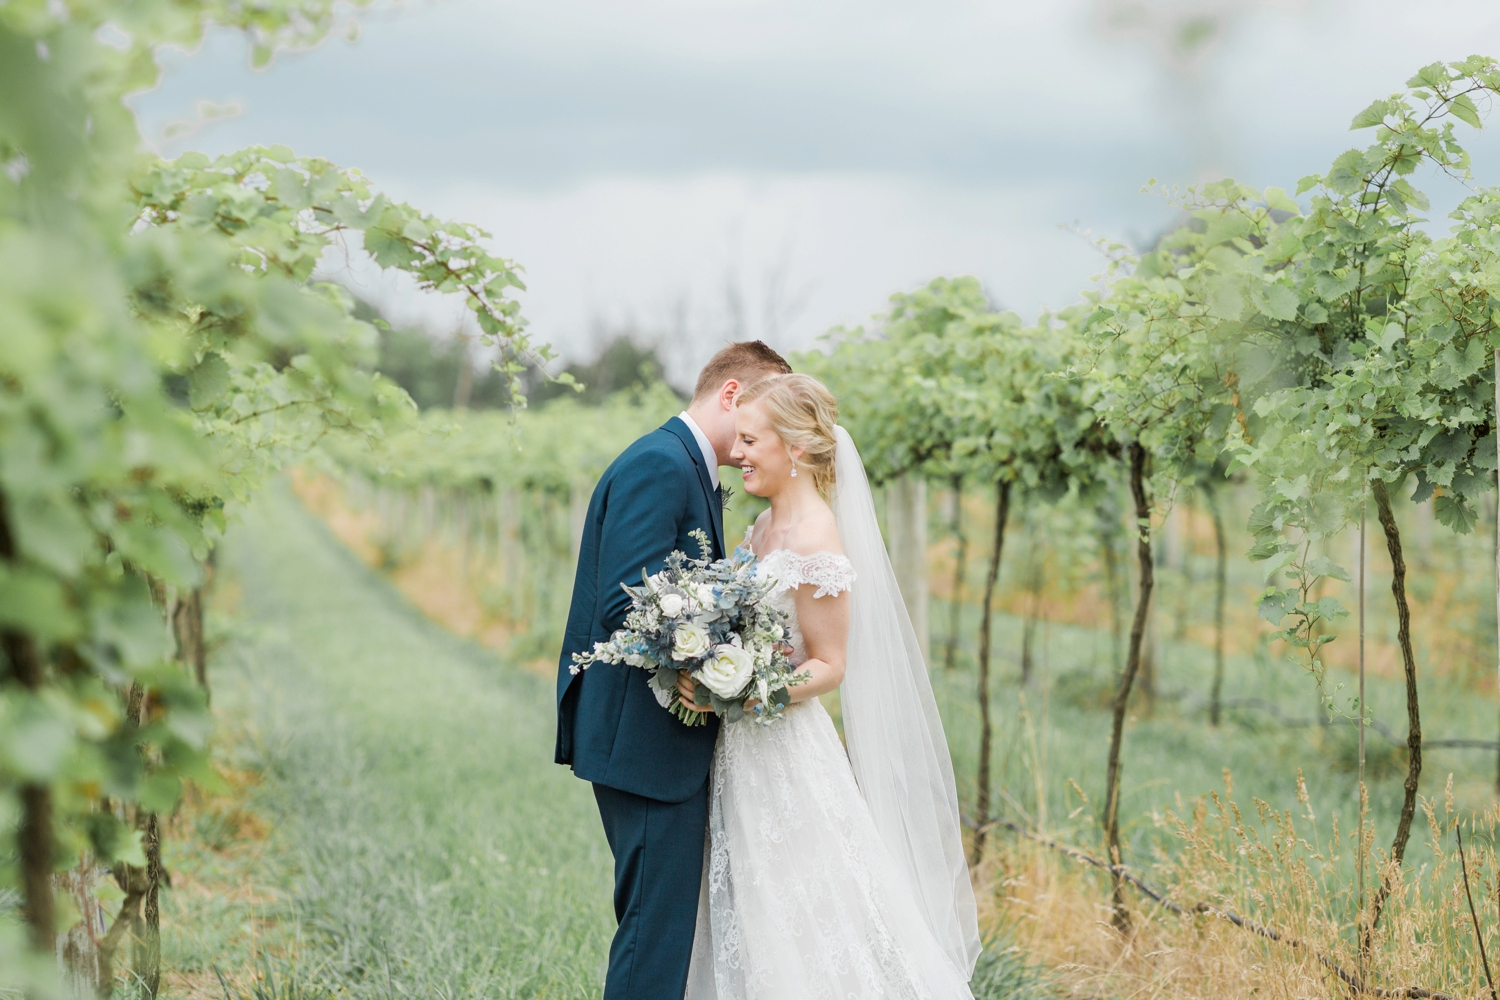 Fine-Art-Film-Daniels-Vineyard-Wedding-Photography_5920.jpg